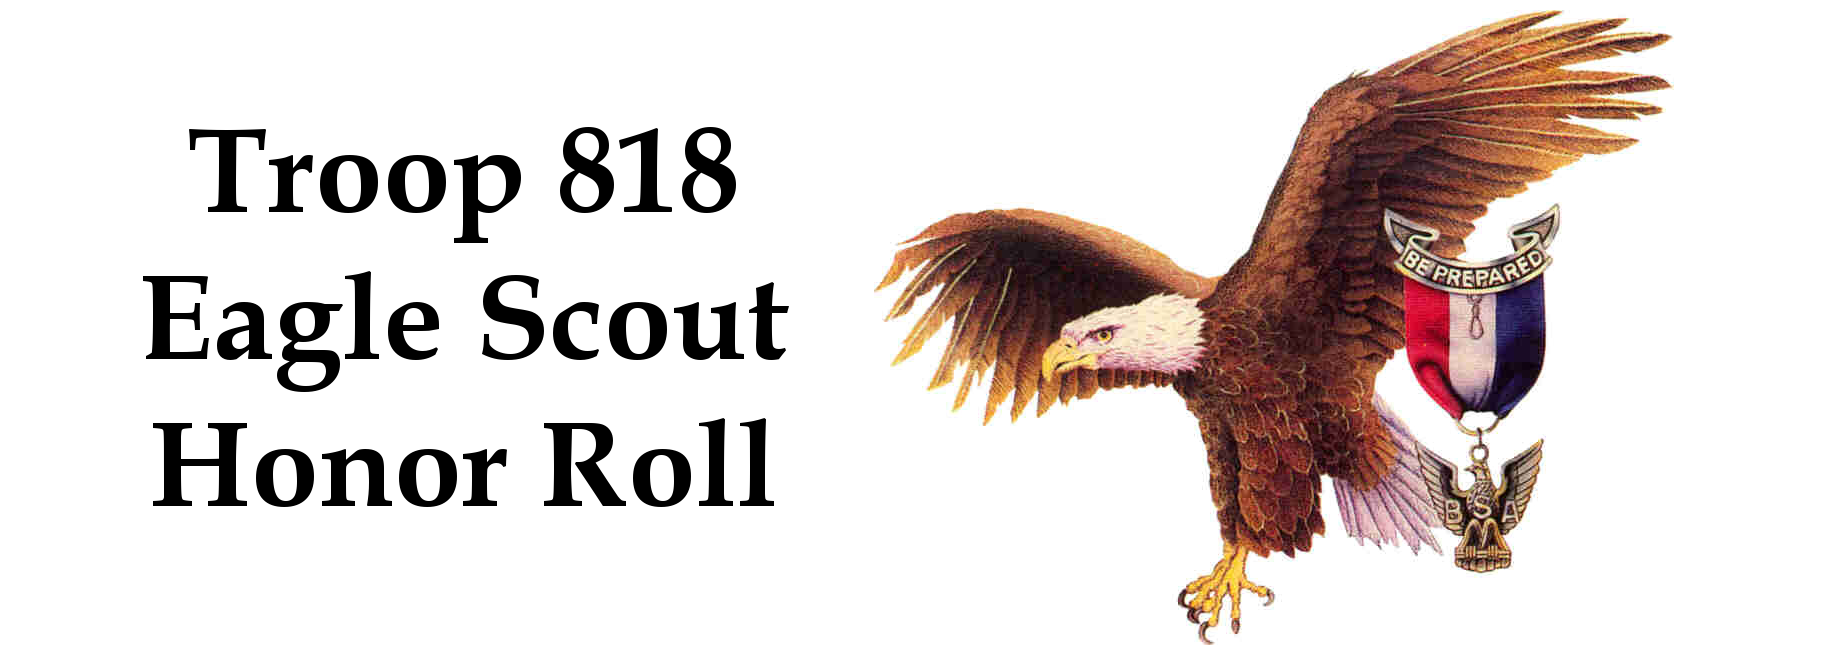 Troop 818 Eagle Scout Honor Roll